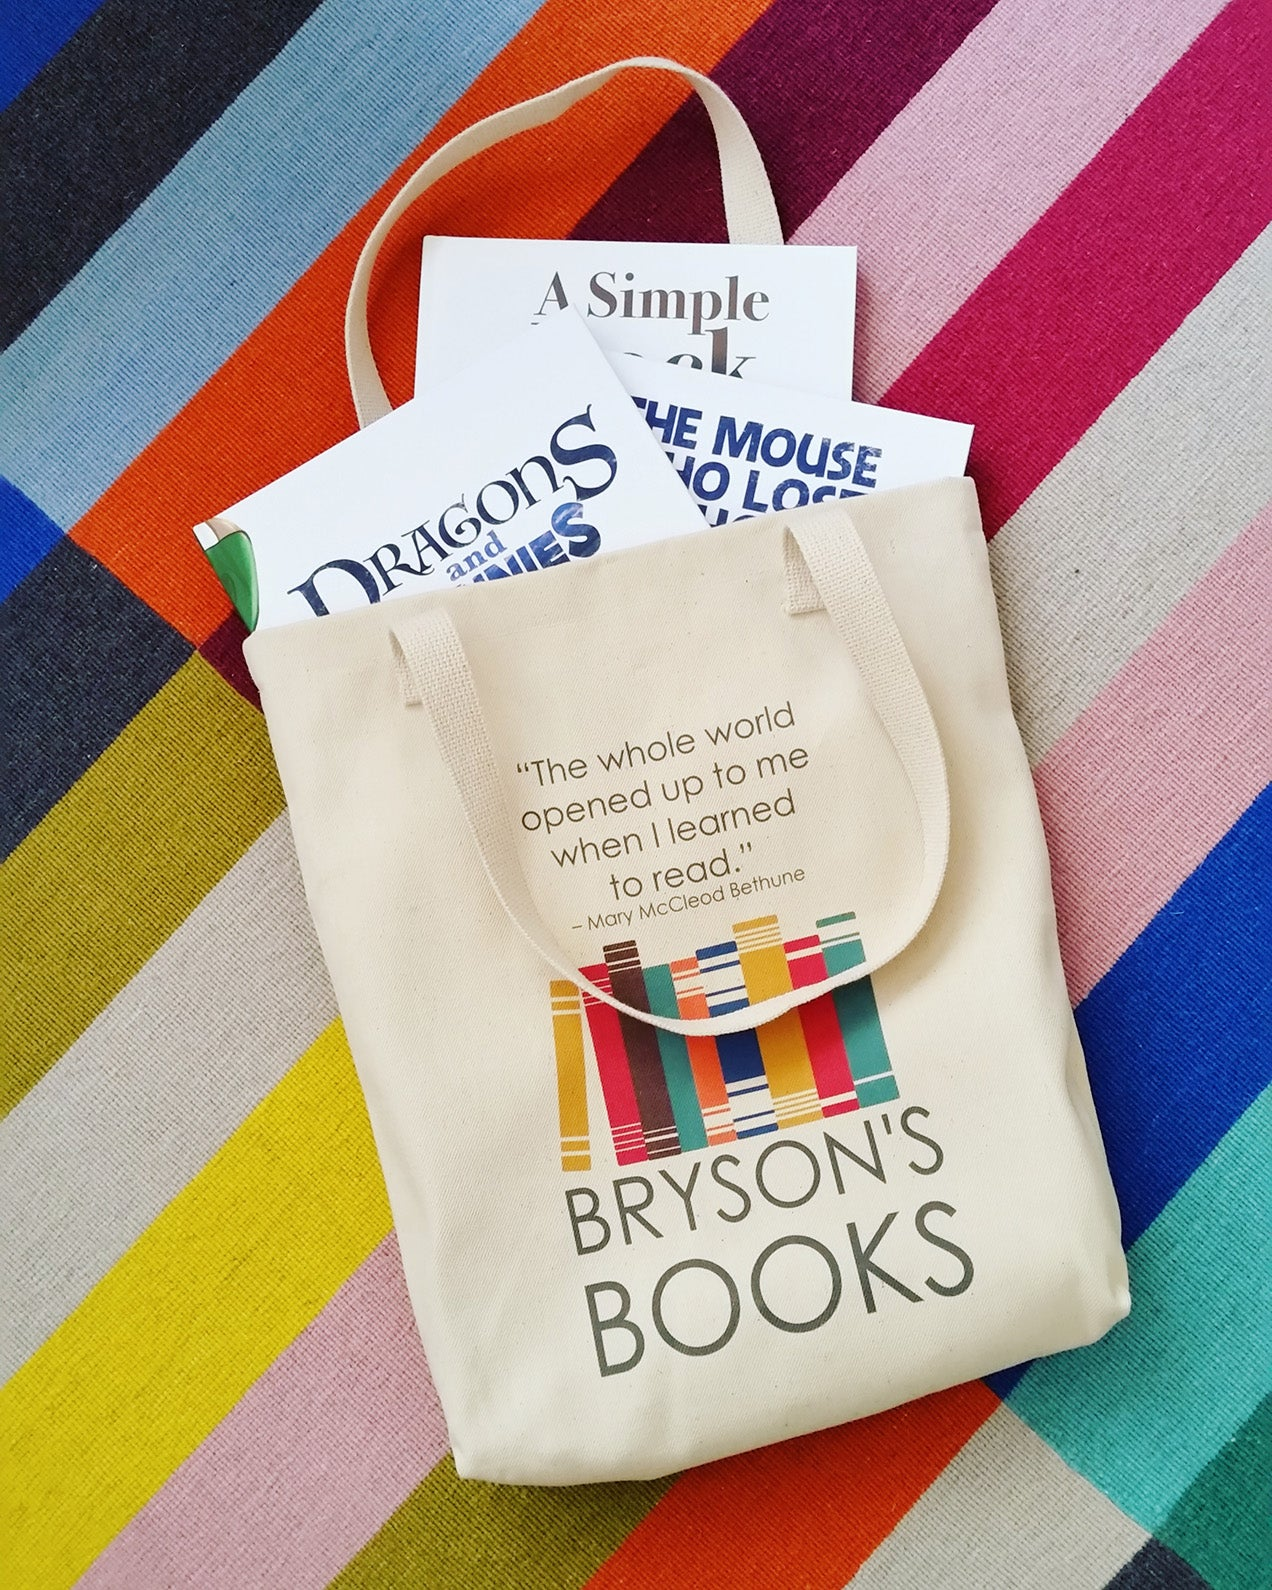 Bryson's Books bag with books social media image example